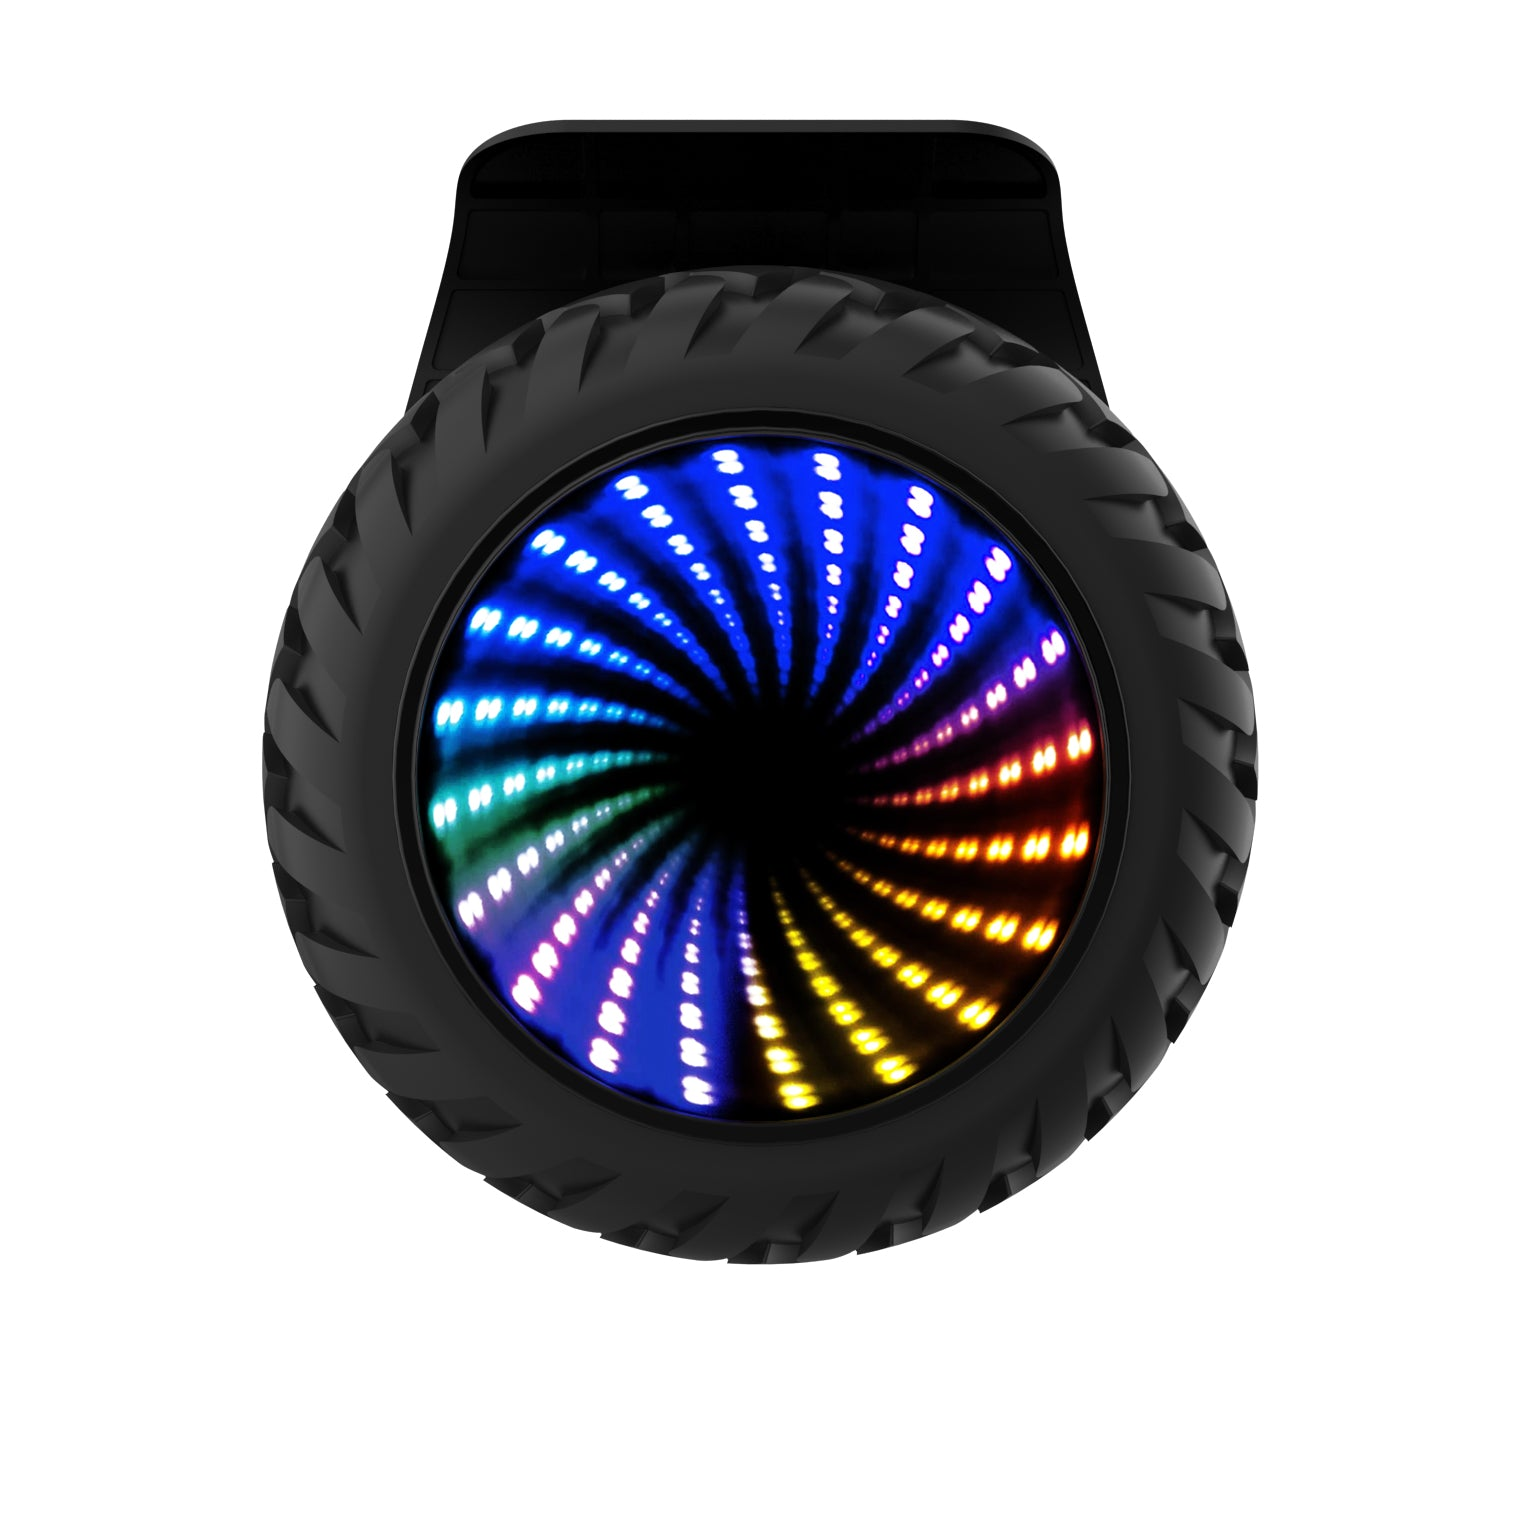 Rainbow IFP hoverboard main image 2